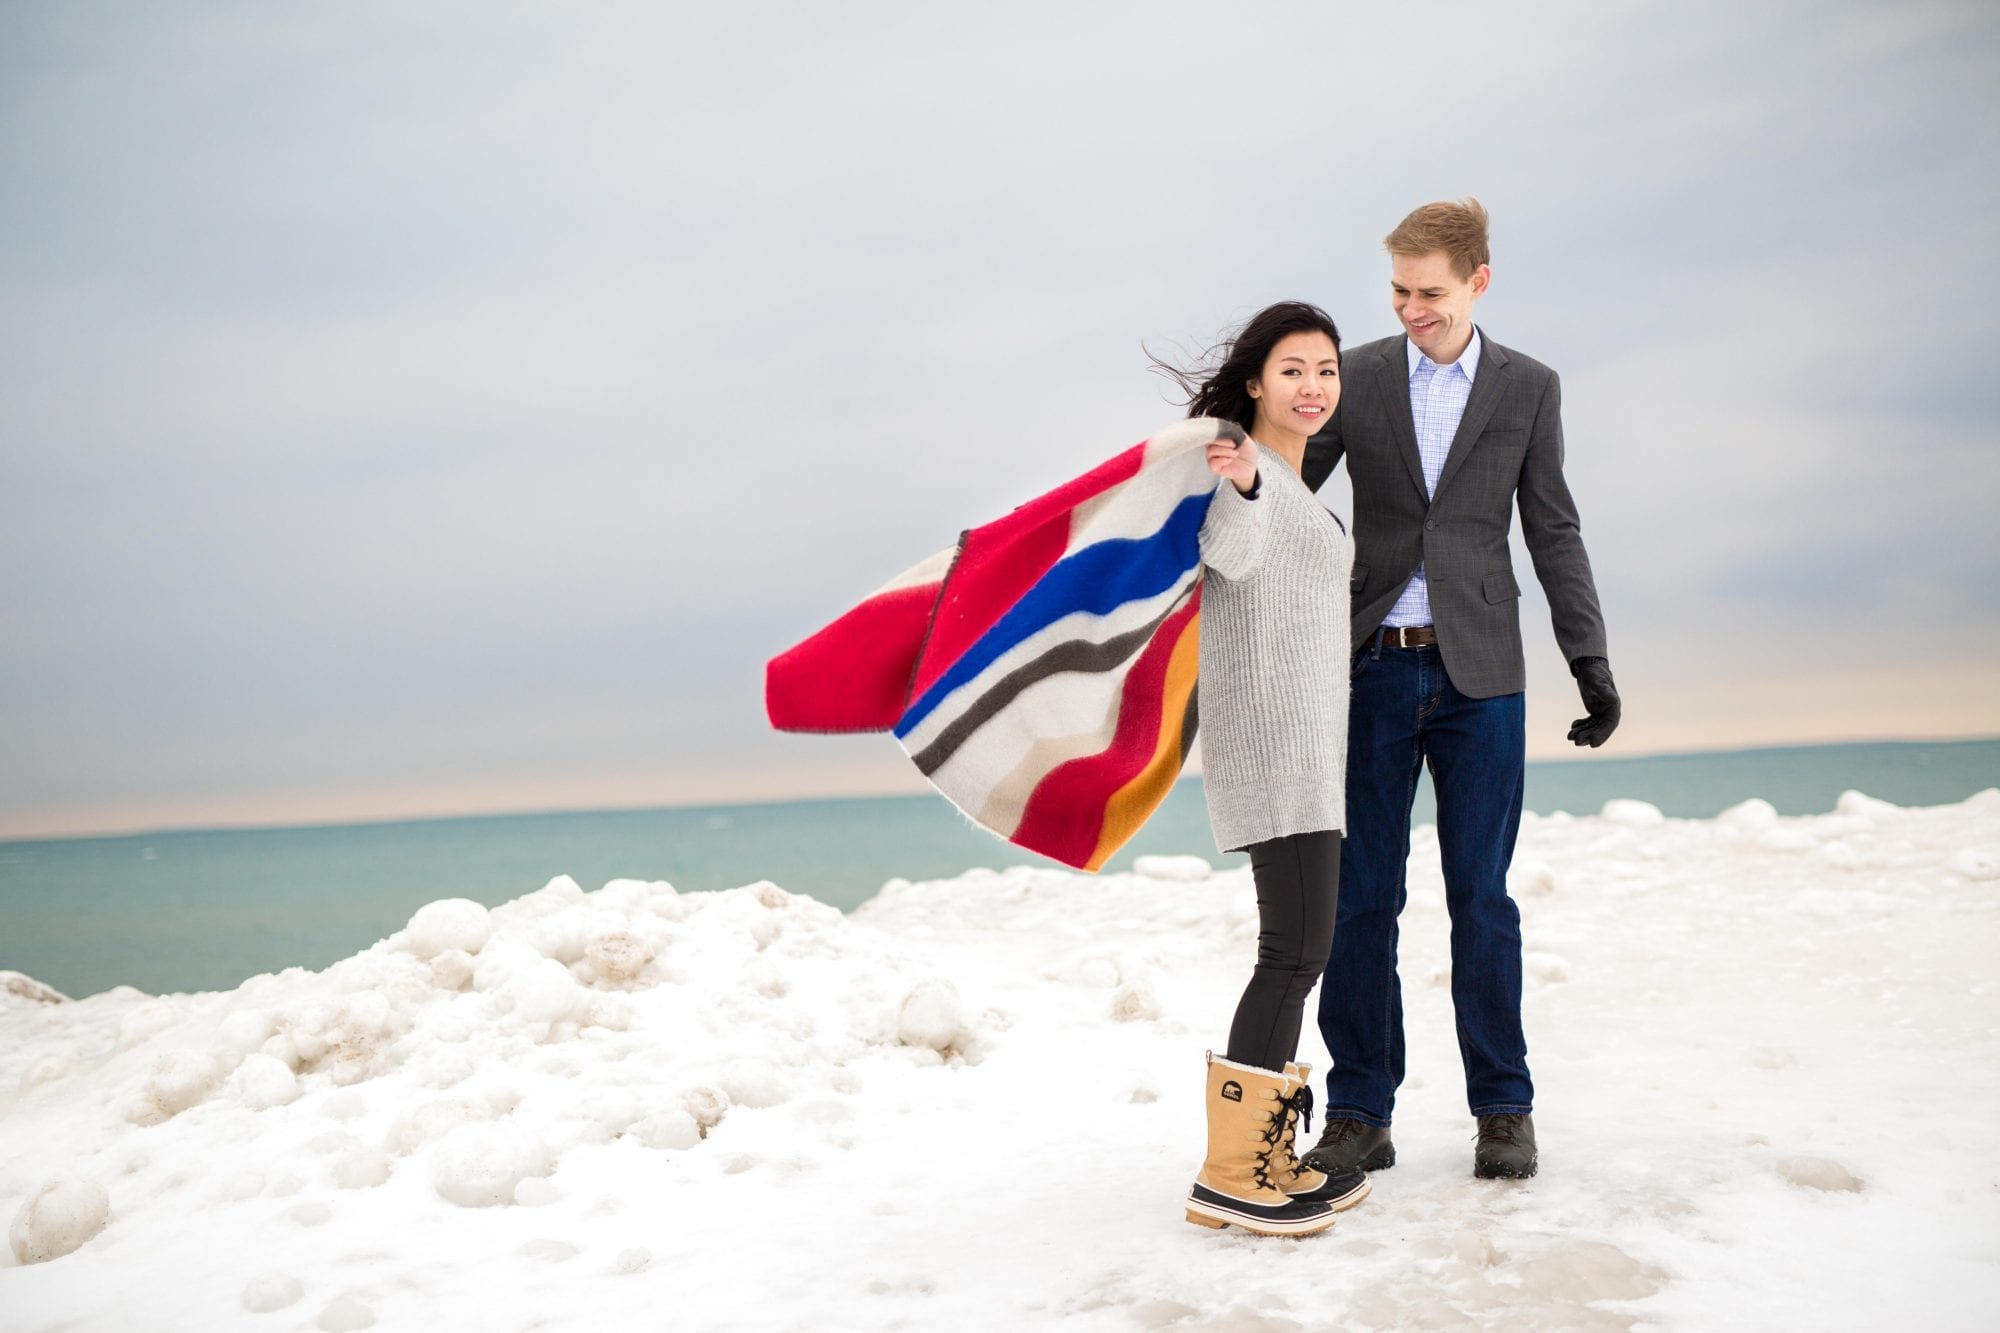 Winter-Shoot-Engagement-Zsuzsi-Pal-Photography